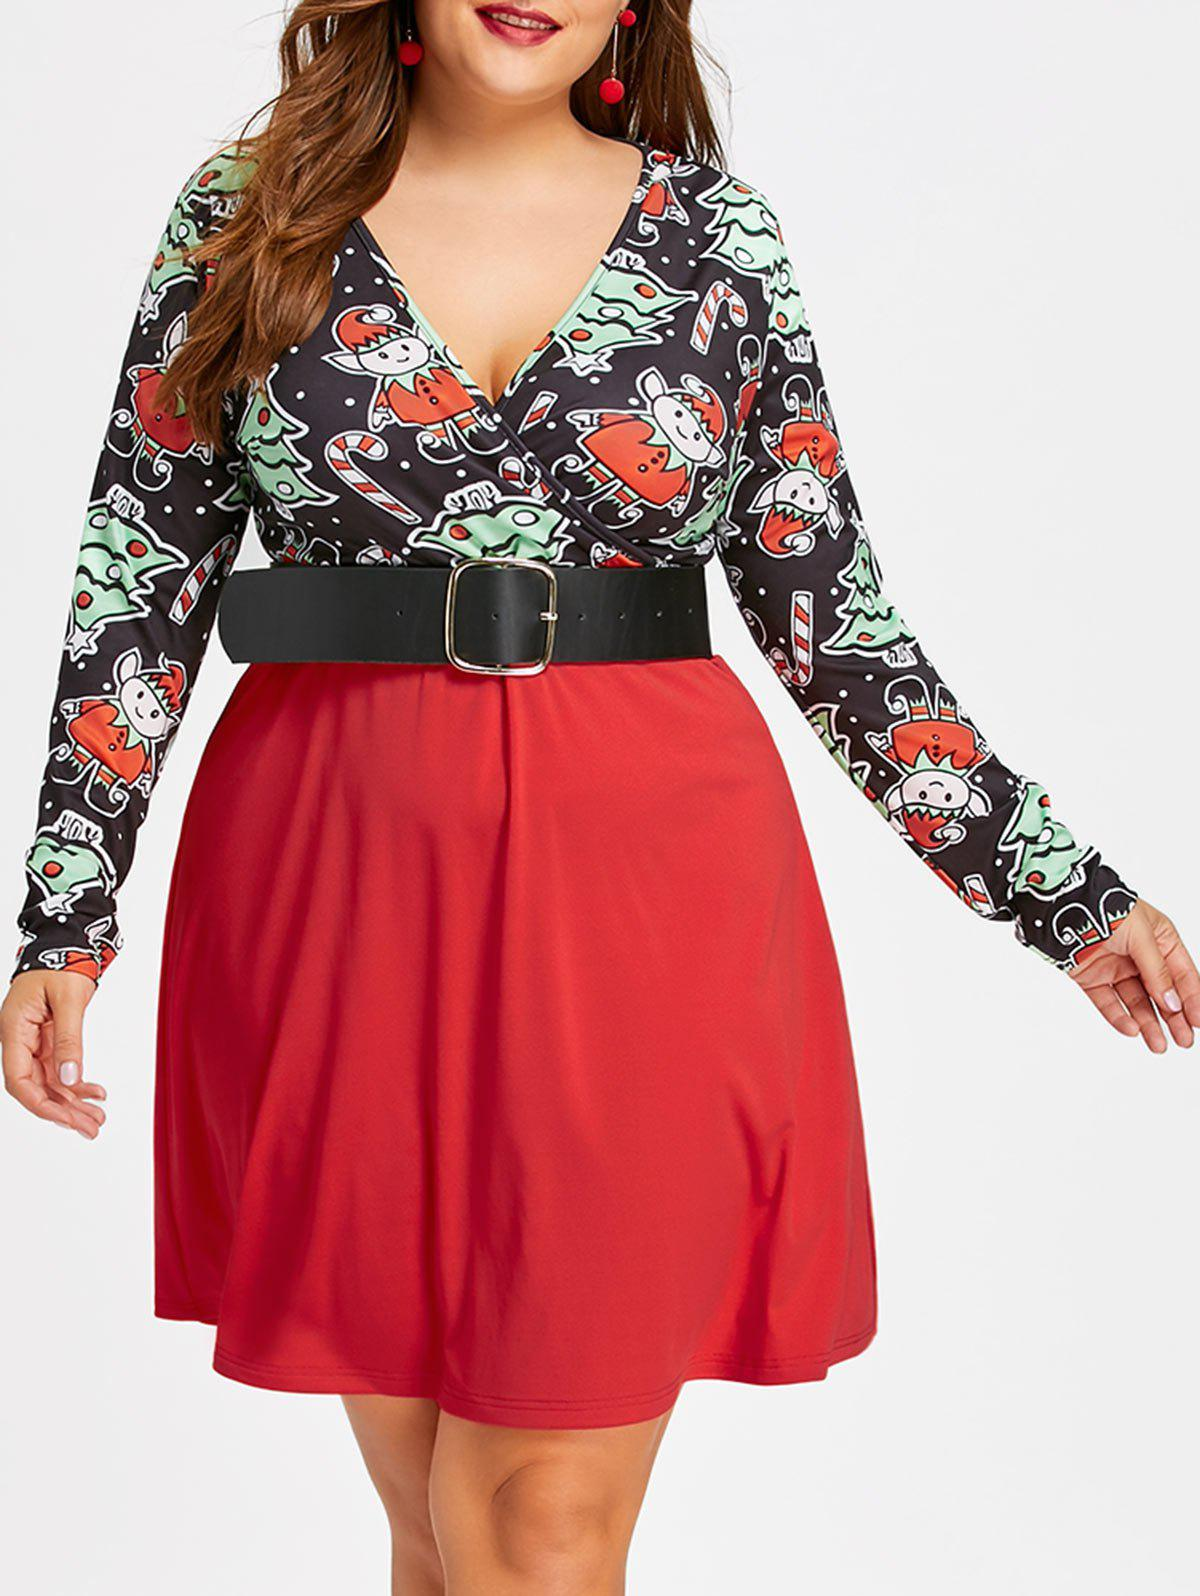 2018 christmas plus size candy cane skater dress red xl in plus